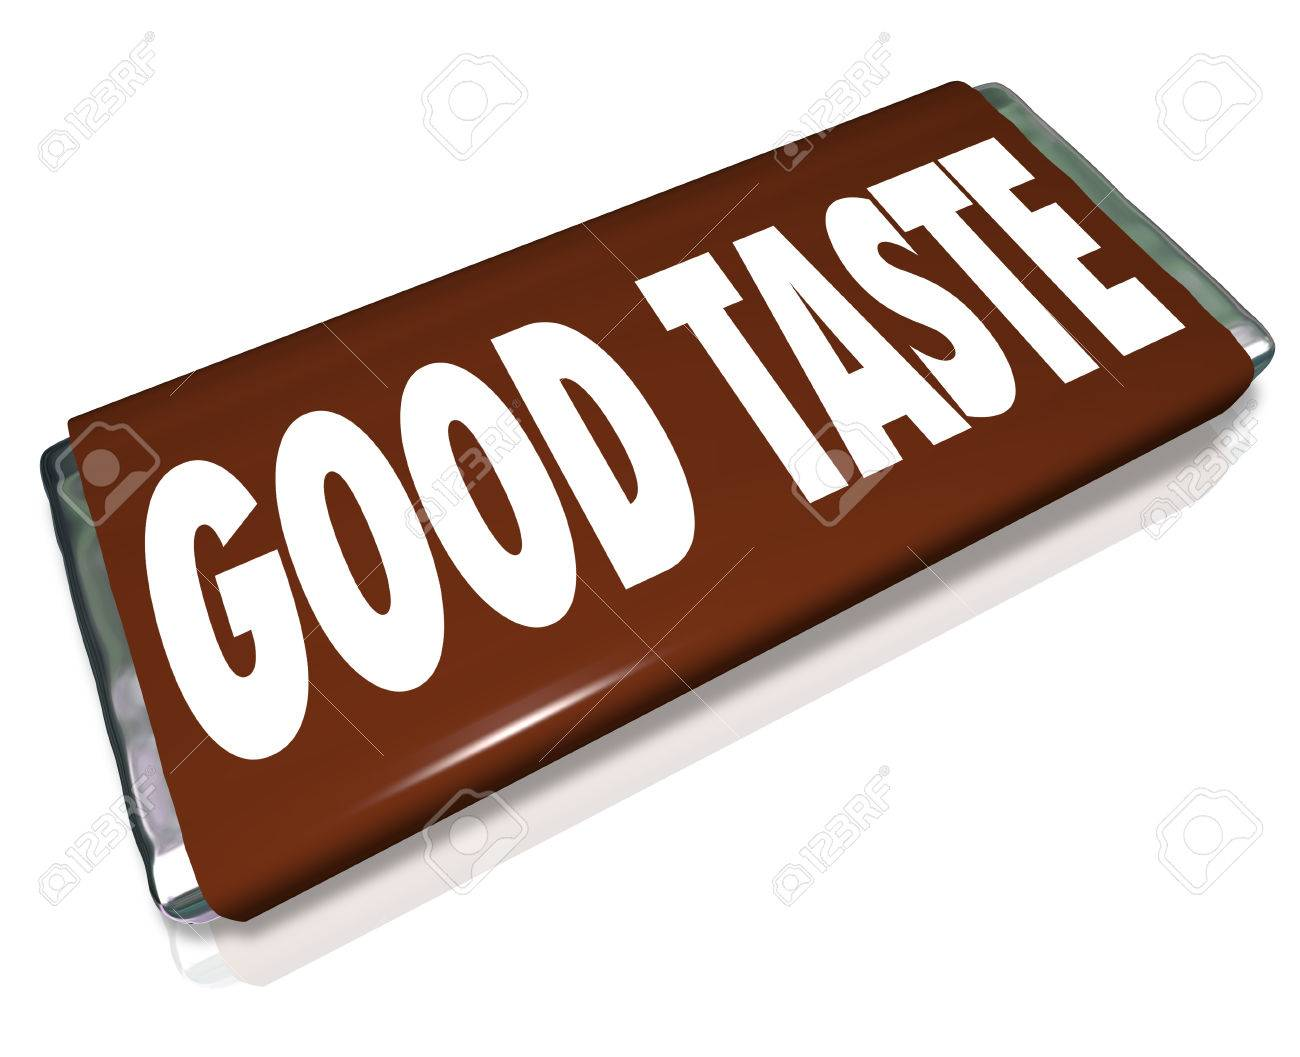 1300x1057 A Brown Chocolate Candy Bar Wrapper With The Words Good Taste